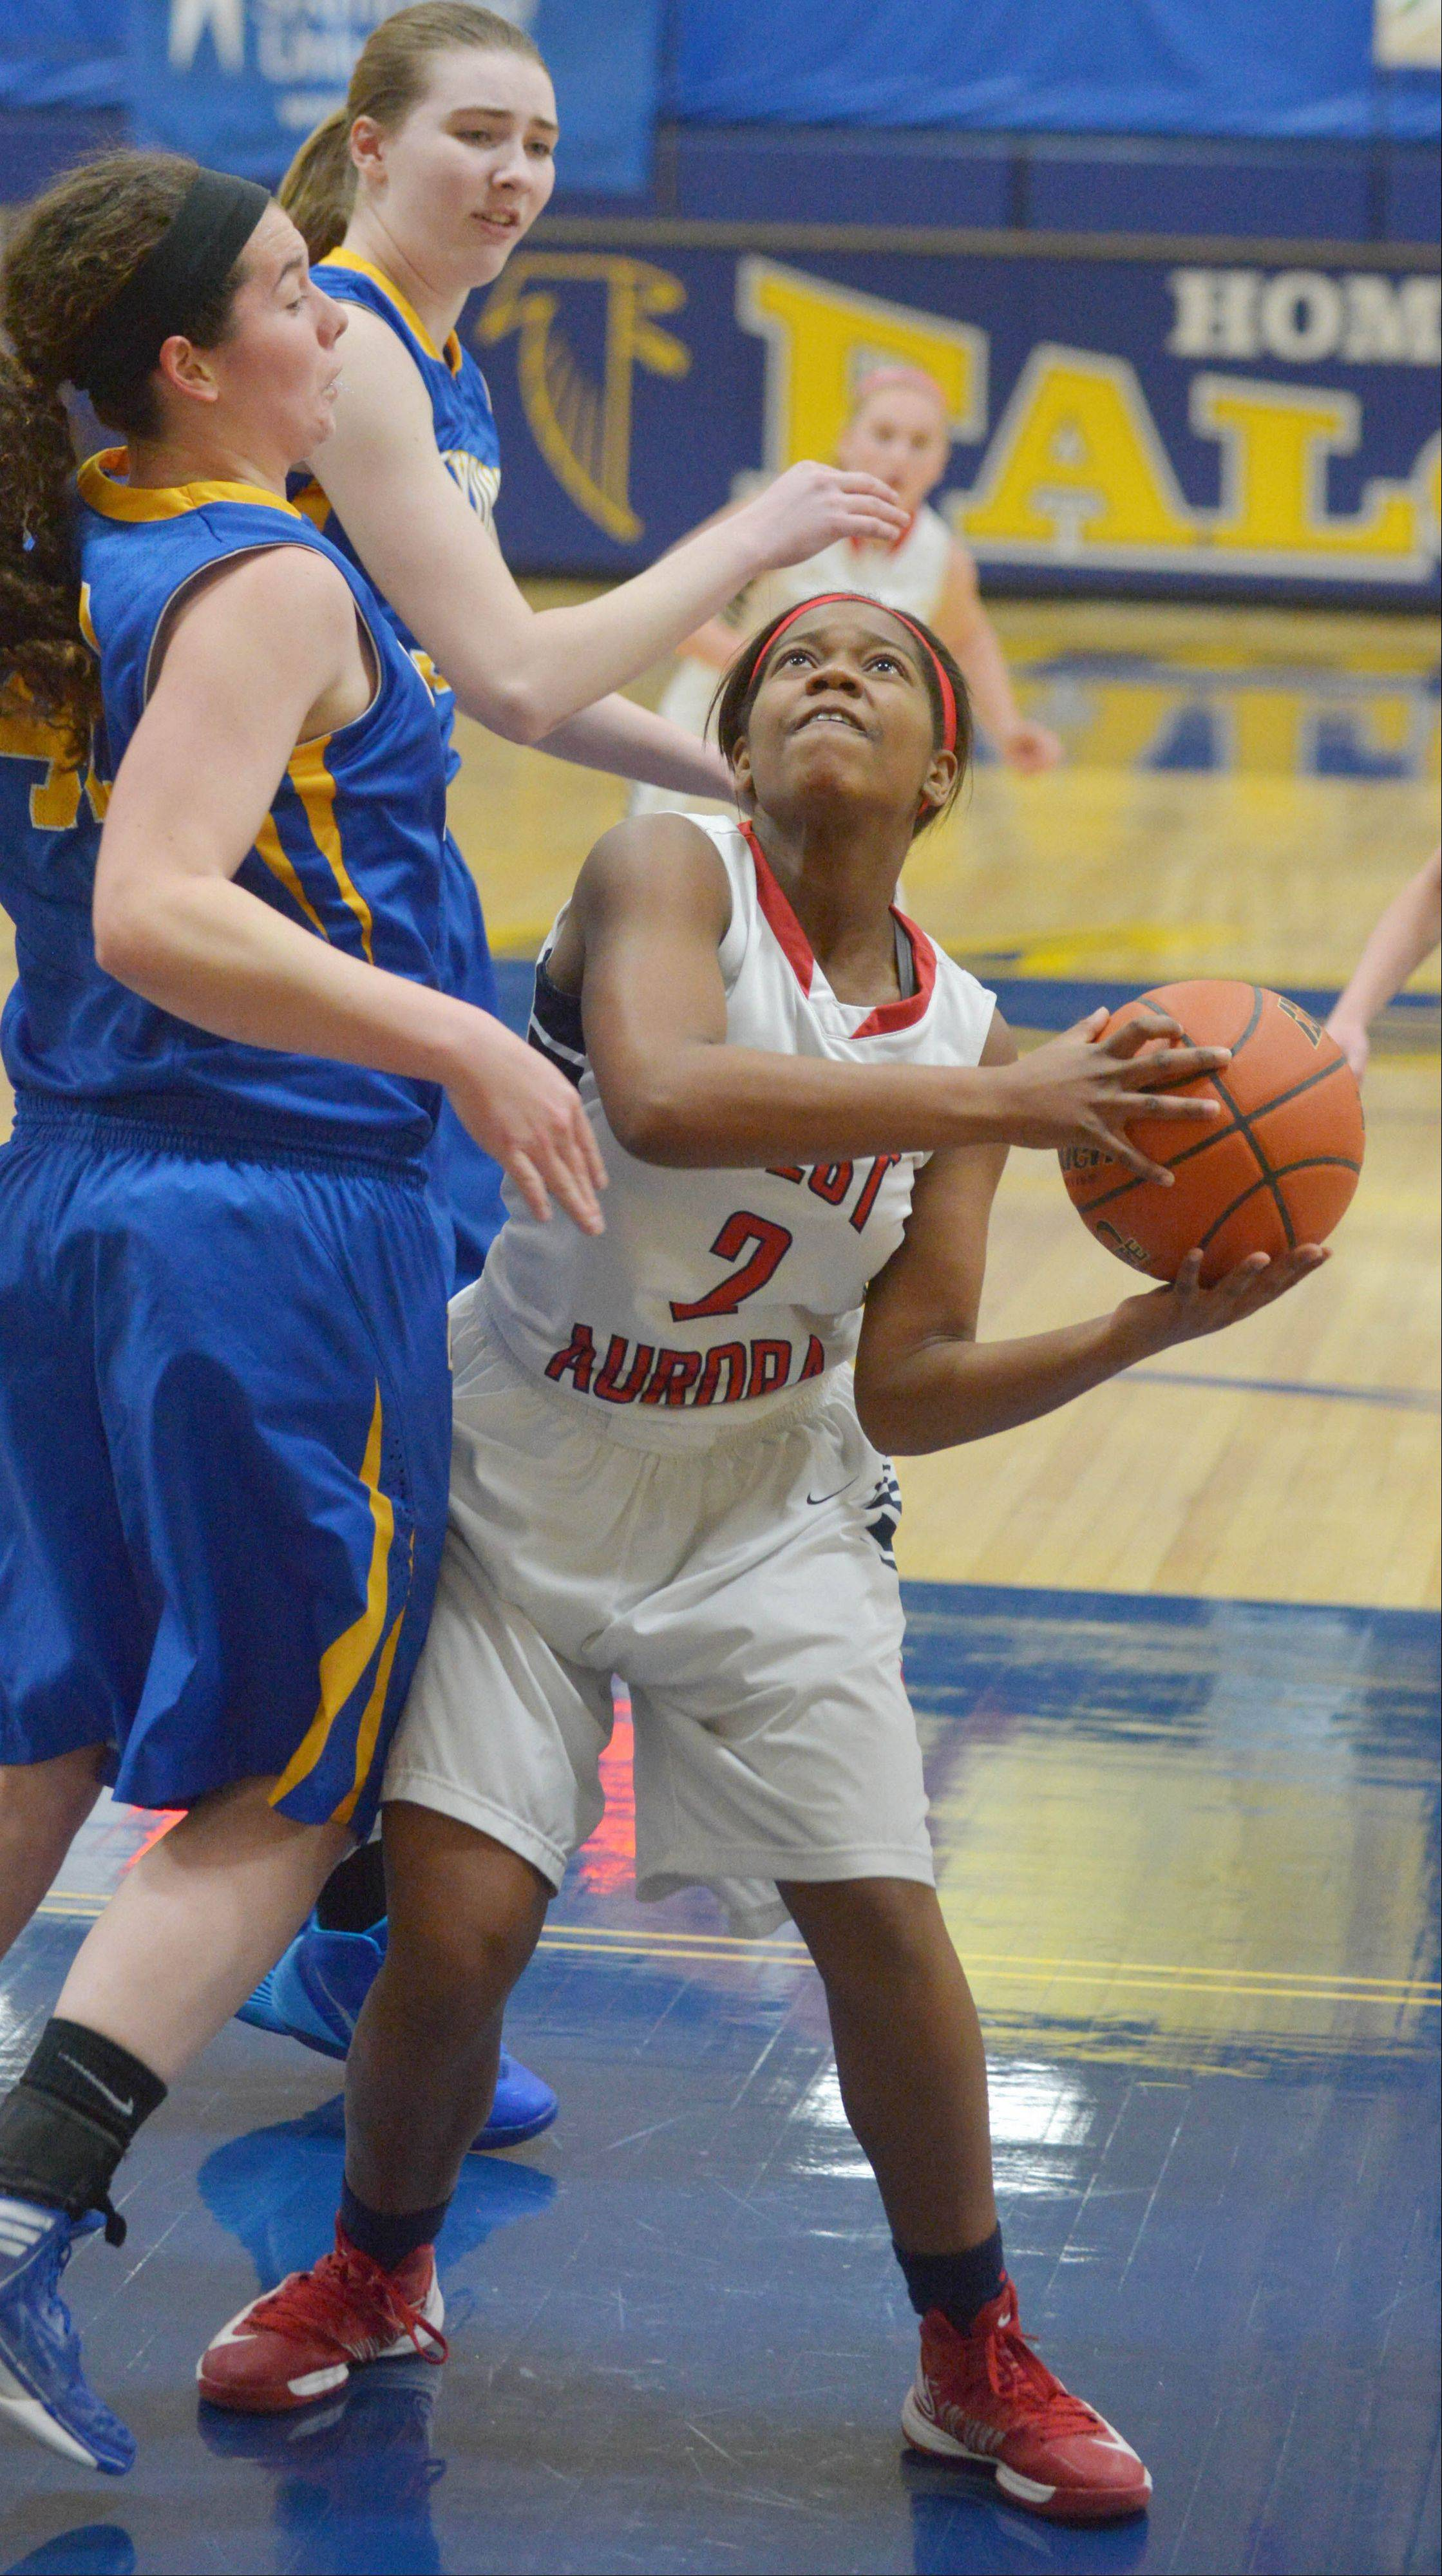 Ashley Williams of West Aurora looks to shoot during the West Aurora at Wheaton North girls basketball tournament game Thursday.